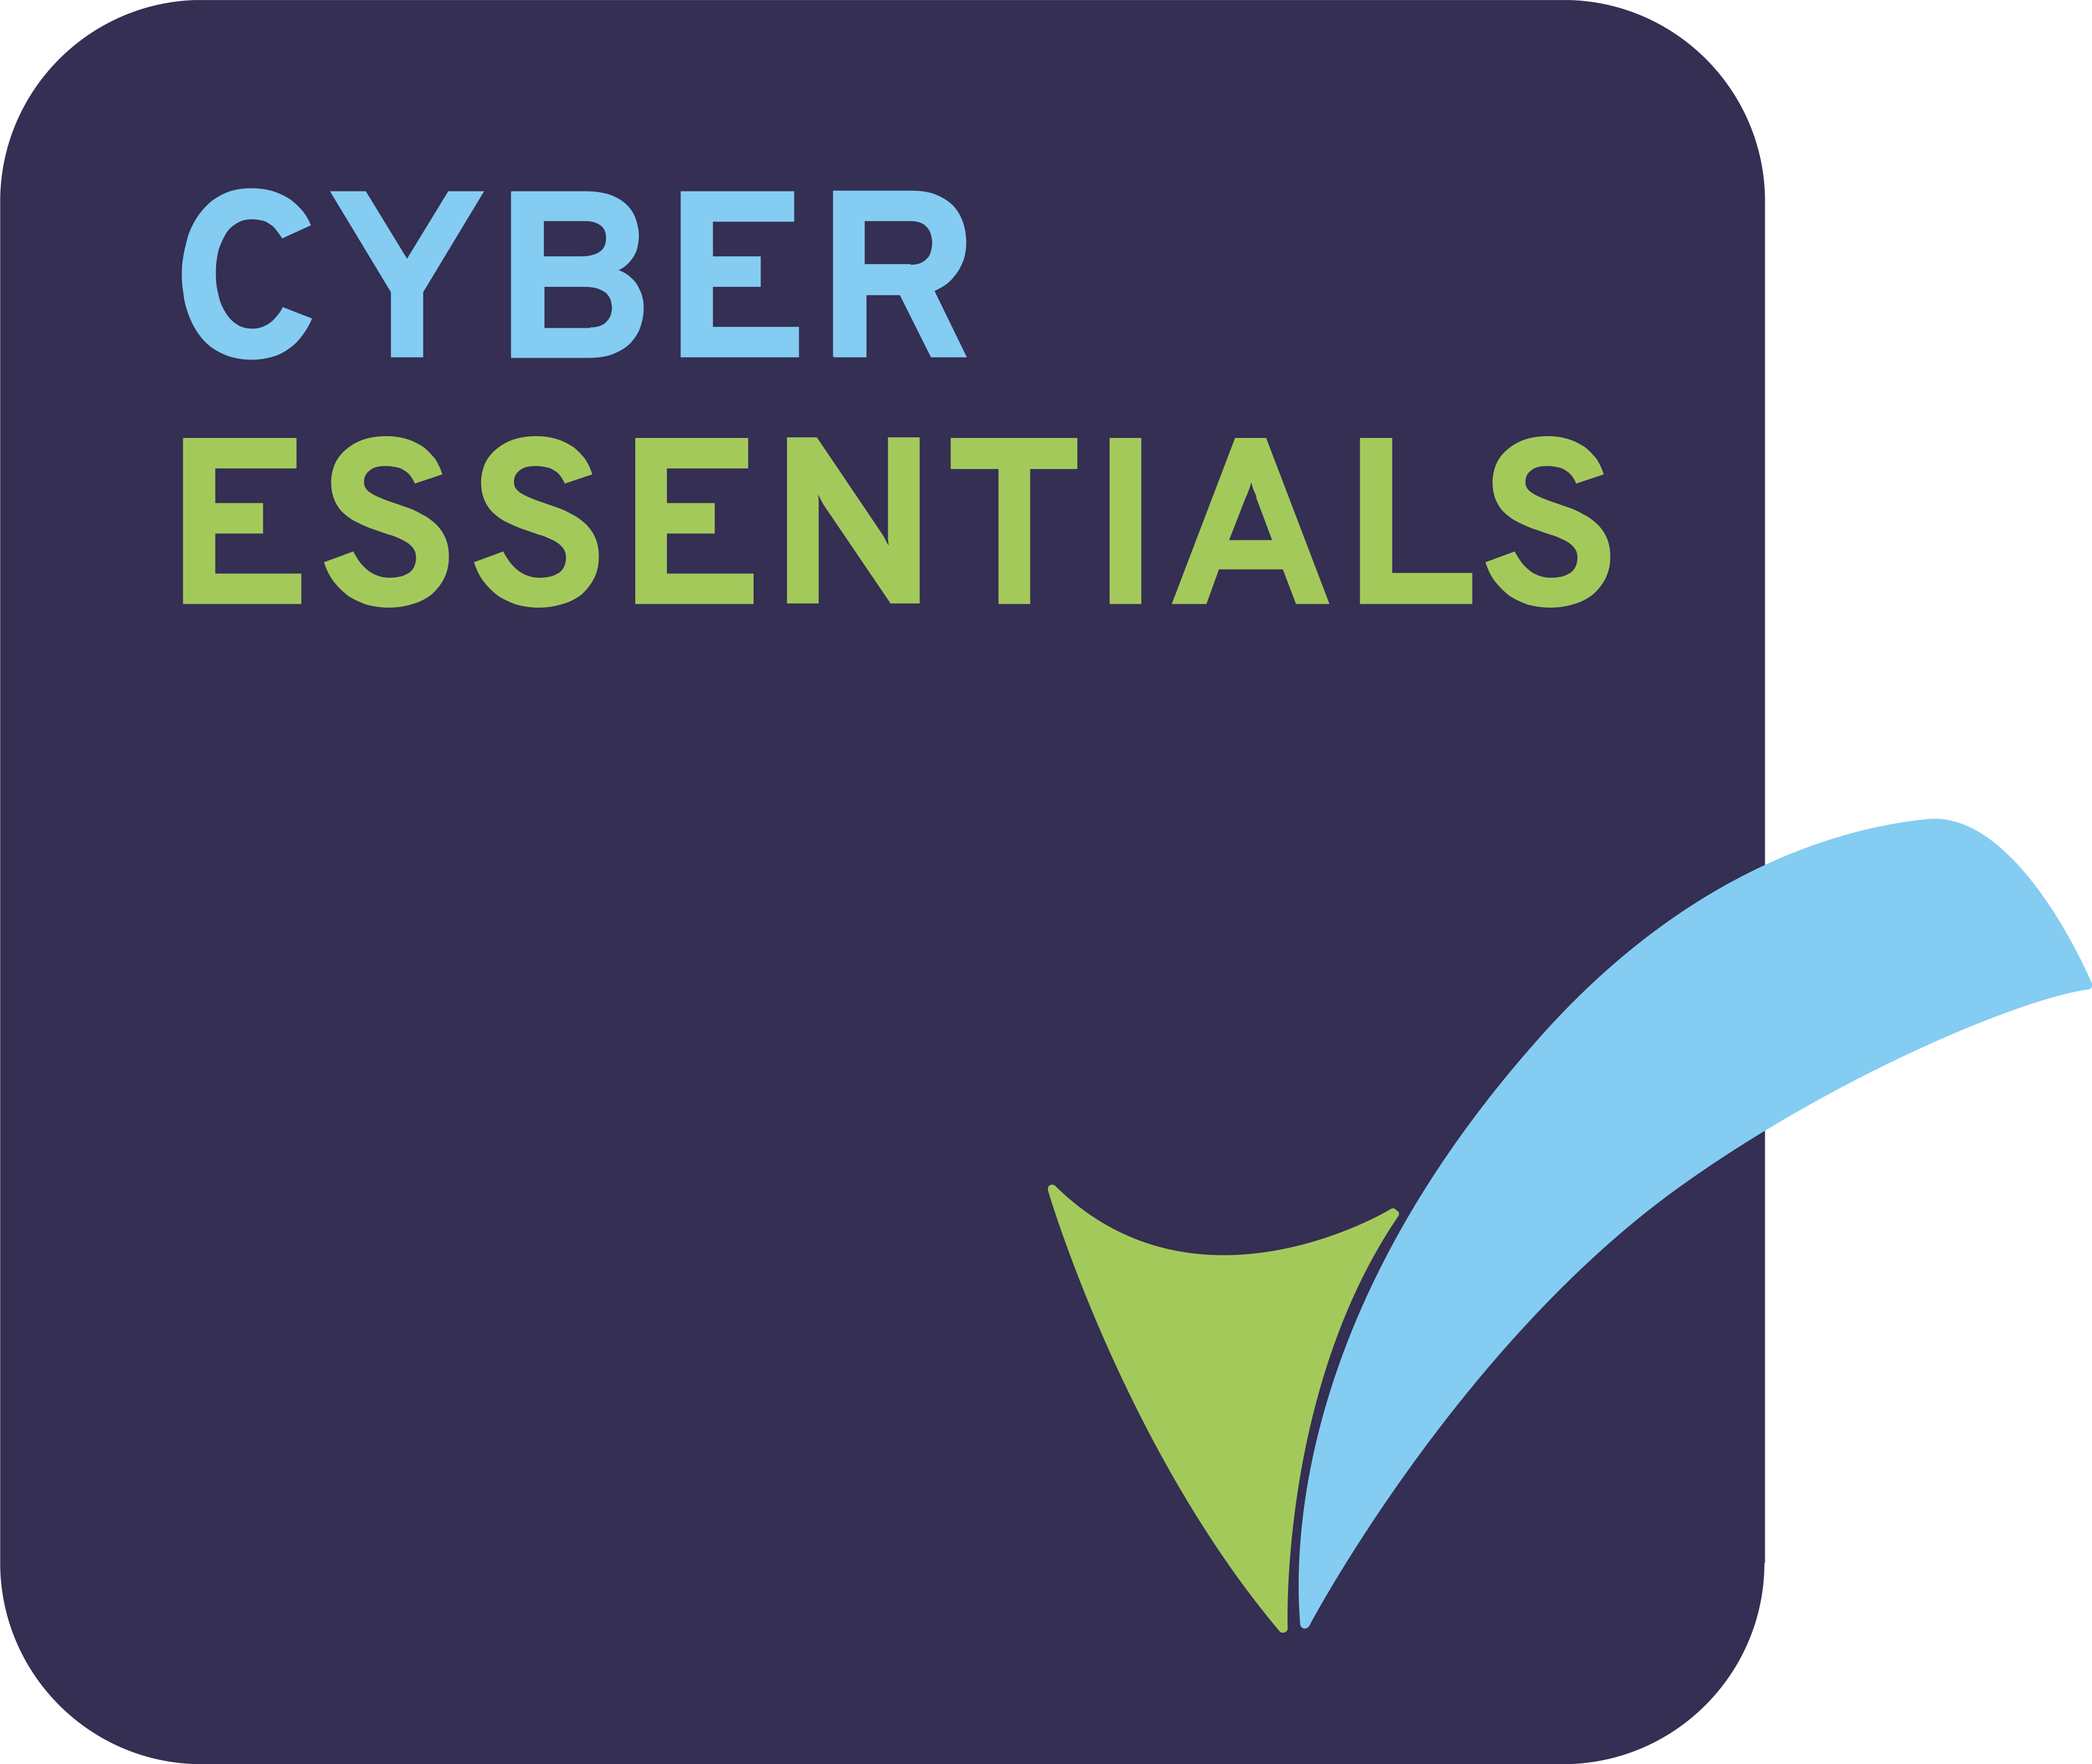 Ultratec is delighted to announce Cyber Essentials Certification